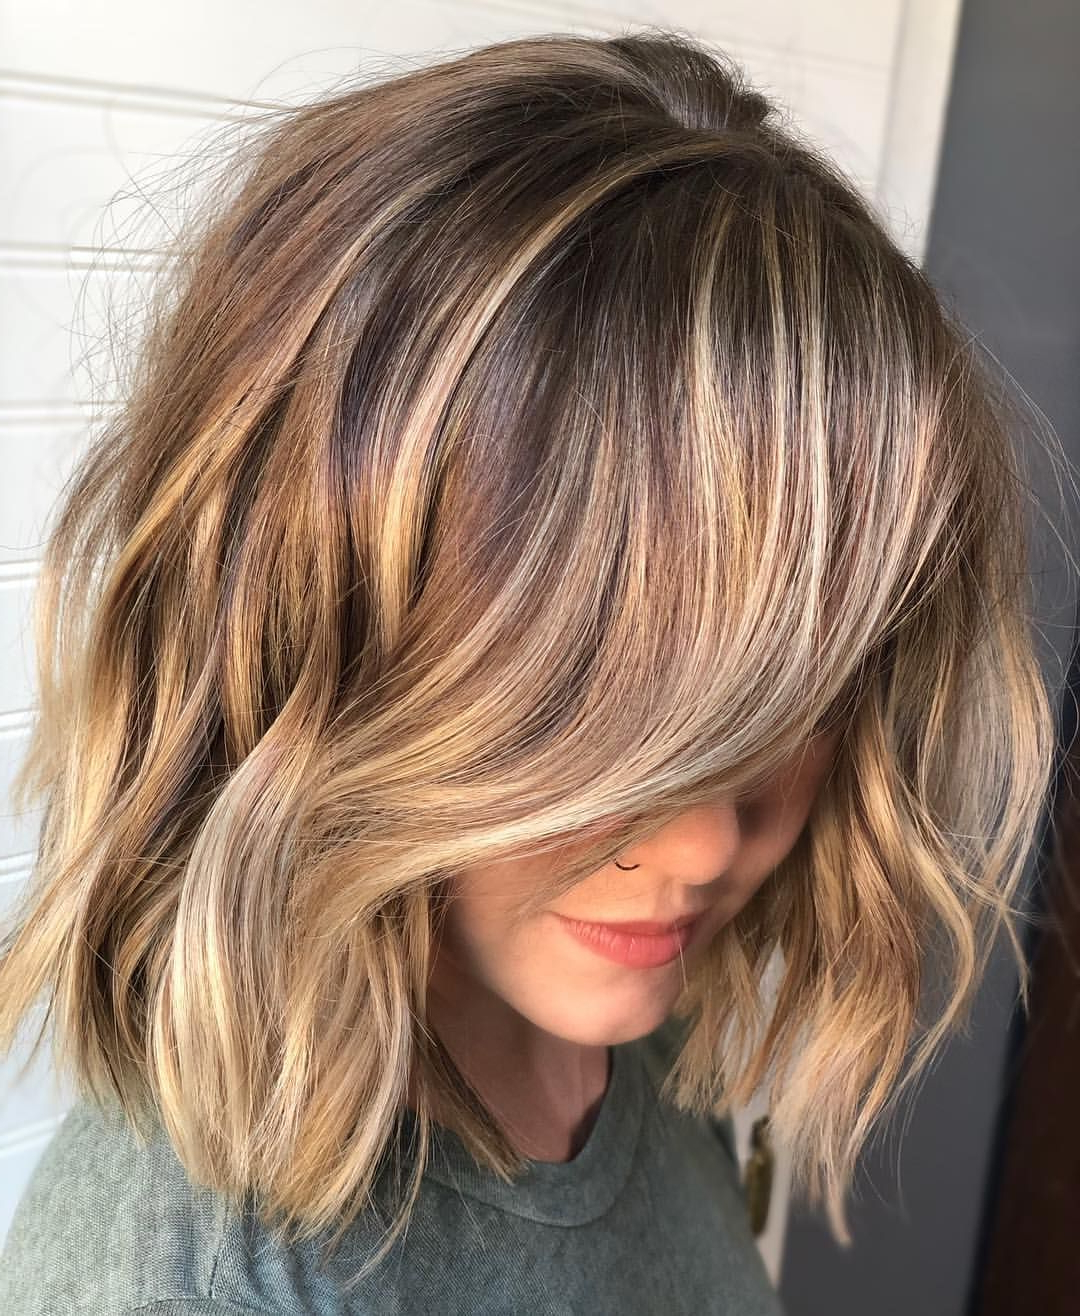 Pin On Hair And Makeup Intended For Caramel Blonde Balayage On Inverted Lob Hairstyles (View 17 of 20)